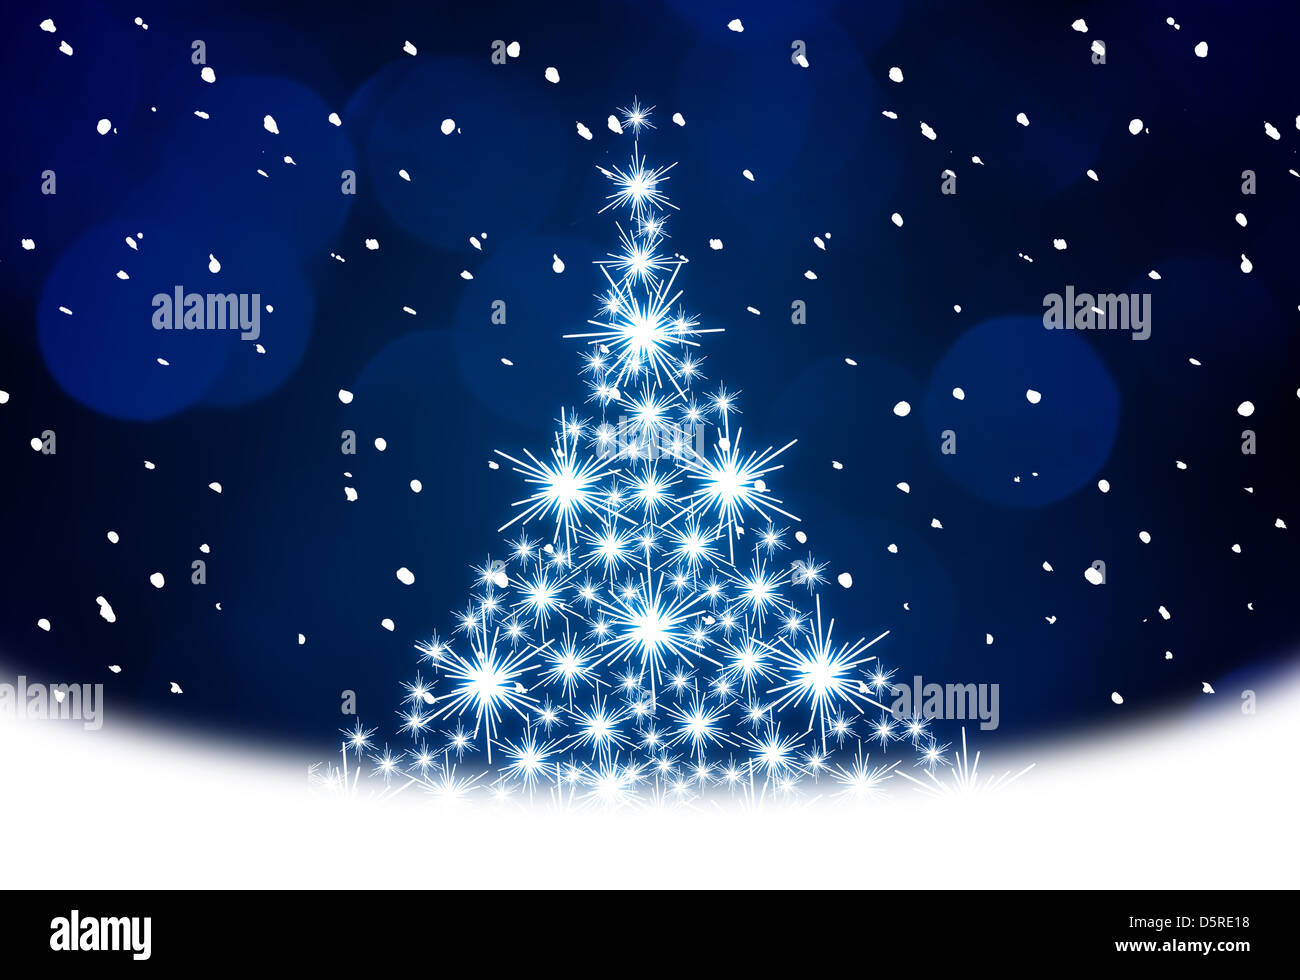 Christmas tree illustration on blue background Stock Photo